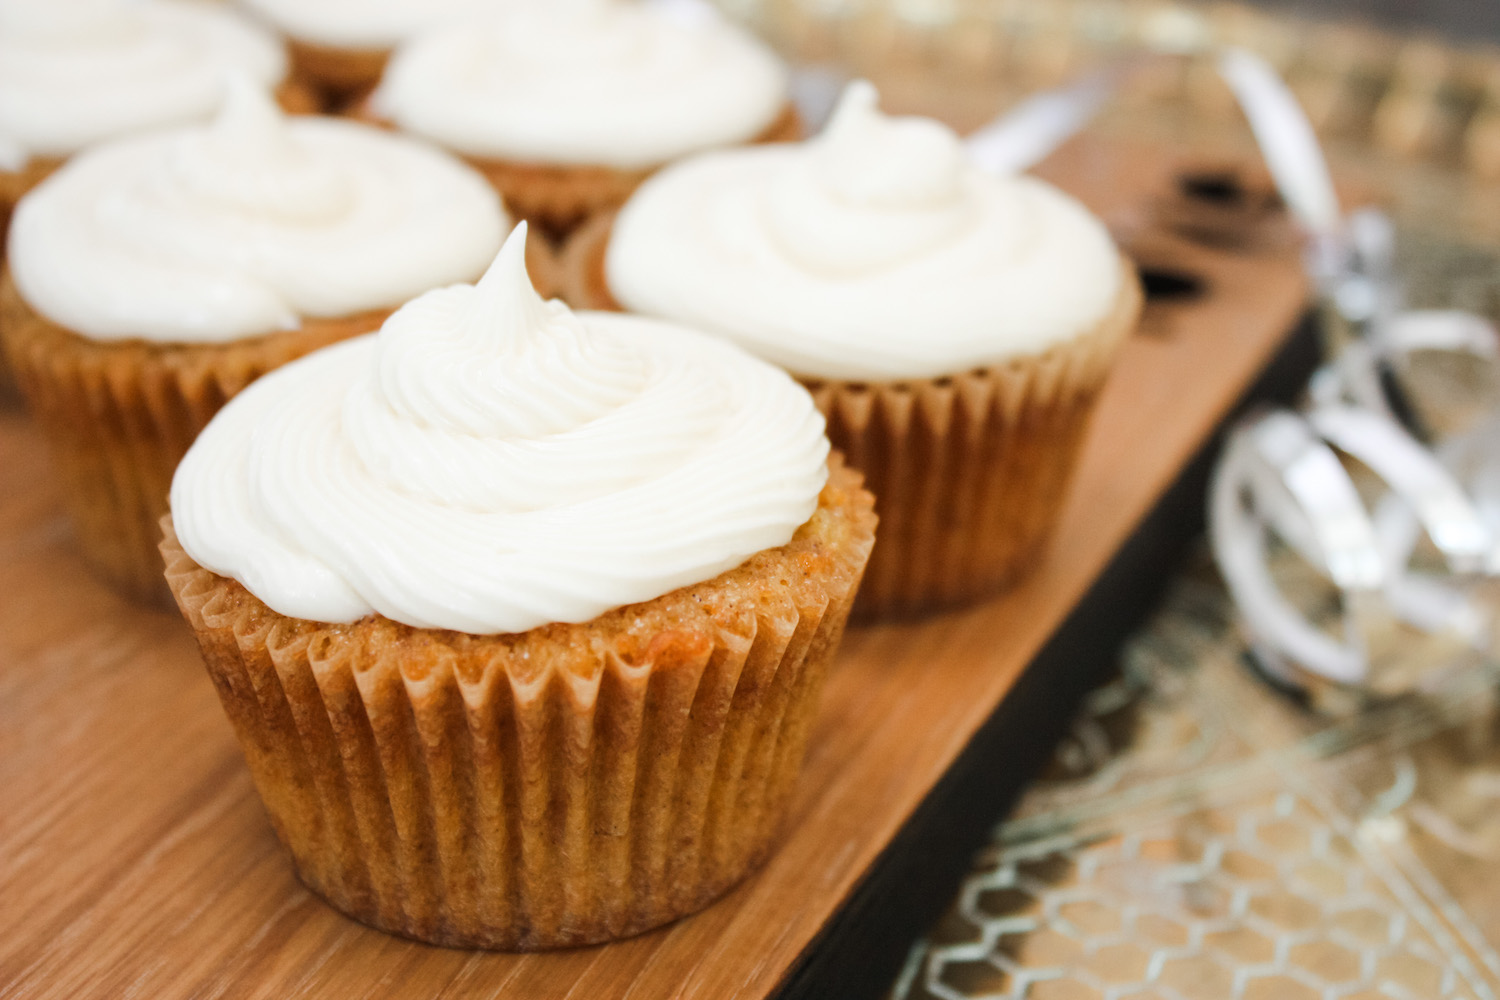 Carrot Cakes frosted and on a wooden board